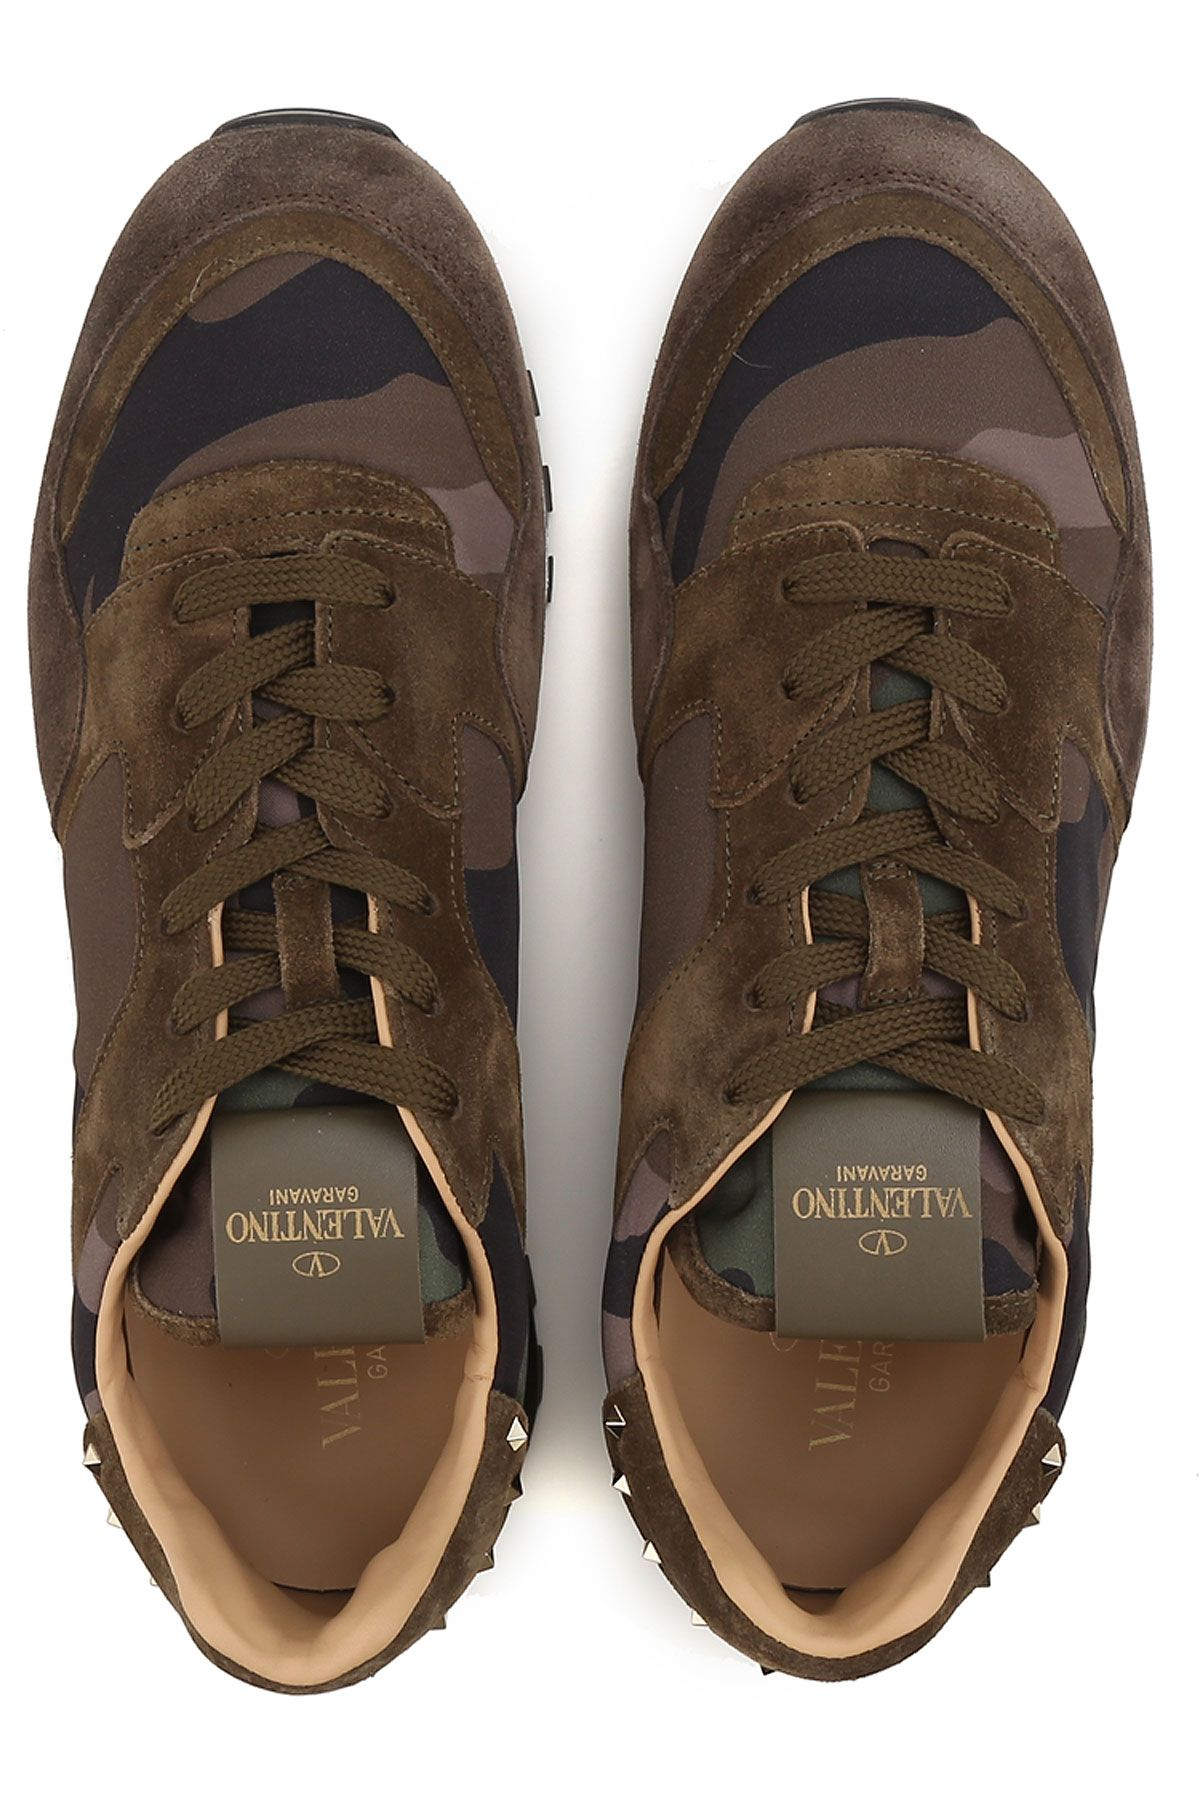 f17cd1bf818 Chaussures Valentino pour Homme